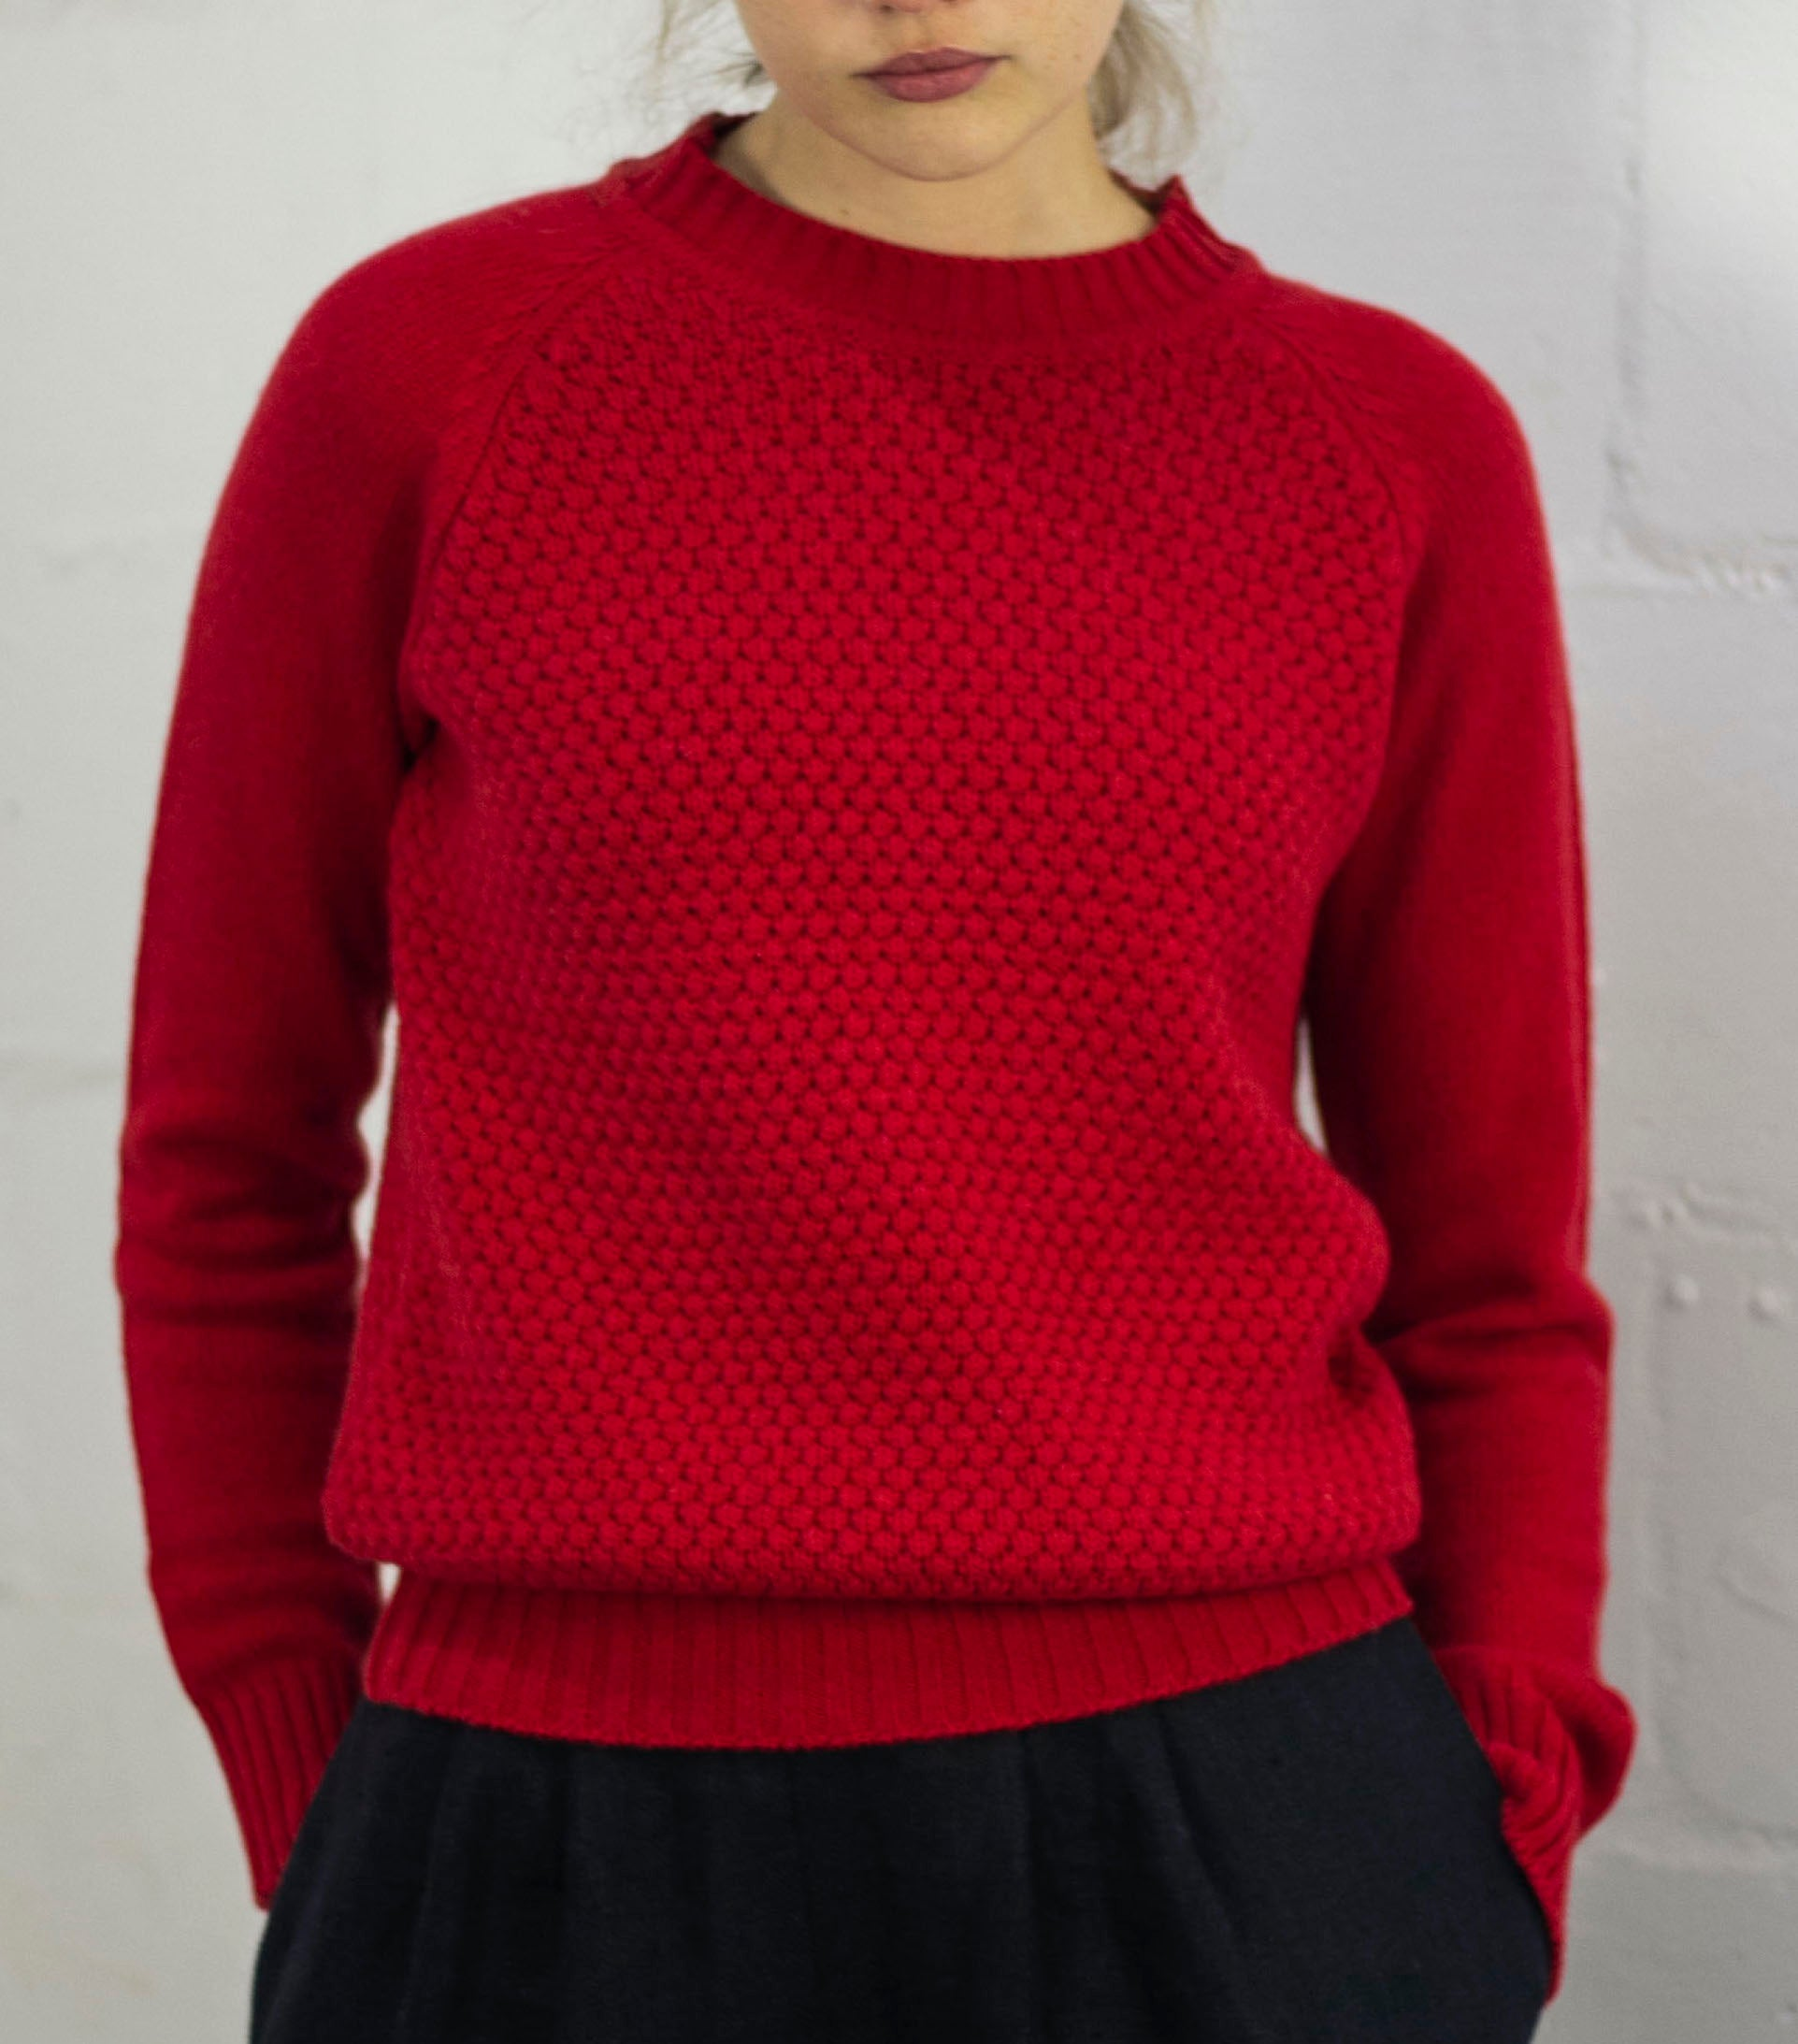 Ally Bee Red Cashmere Sweater in recycled cashmere yarn.